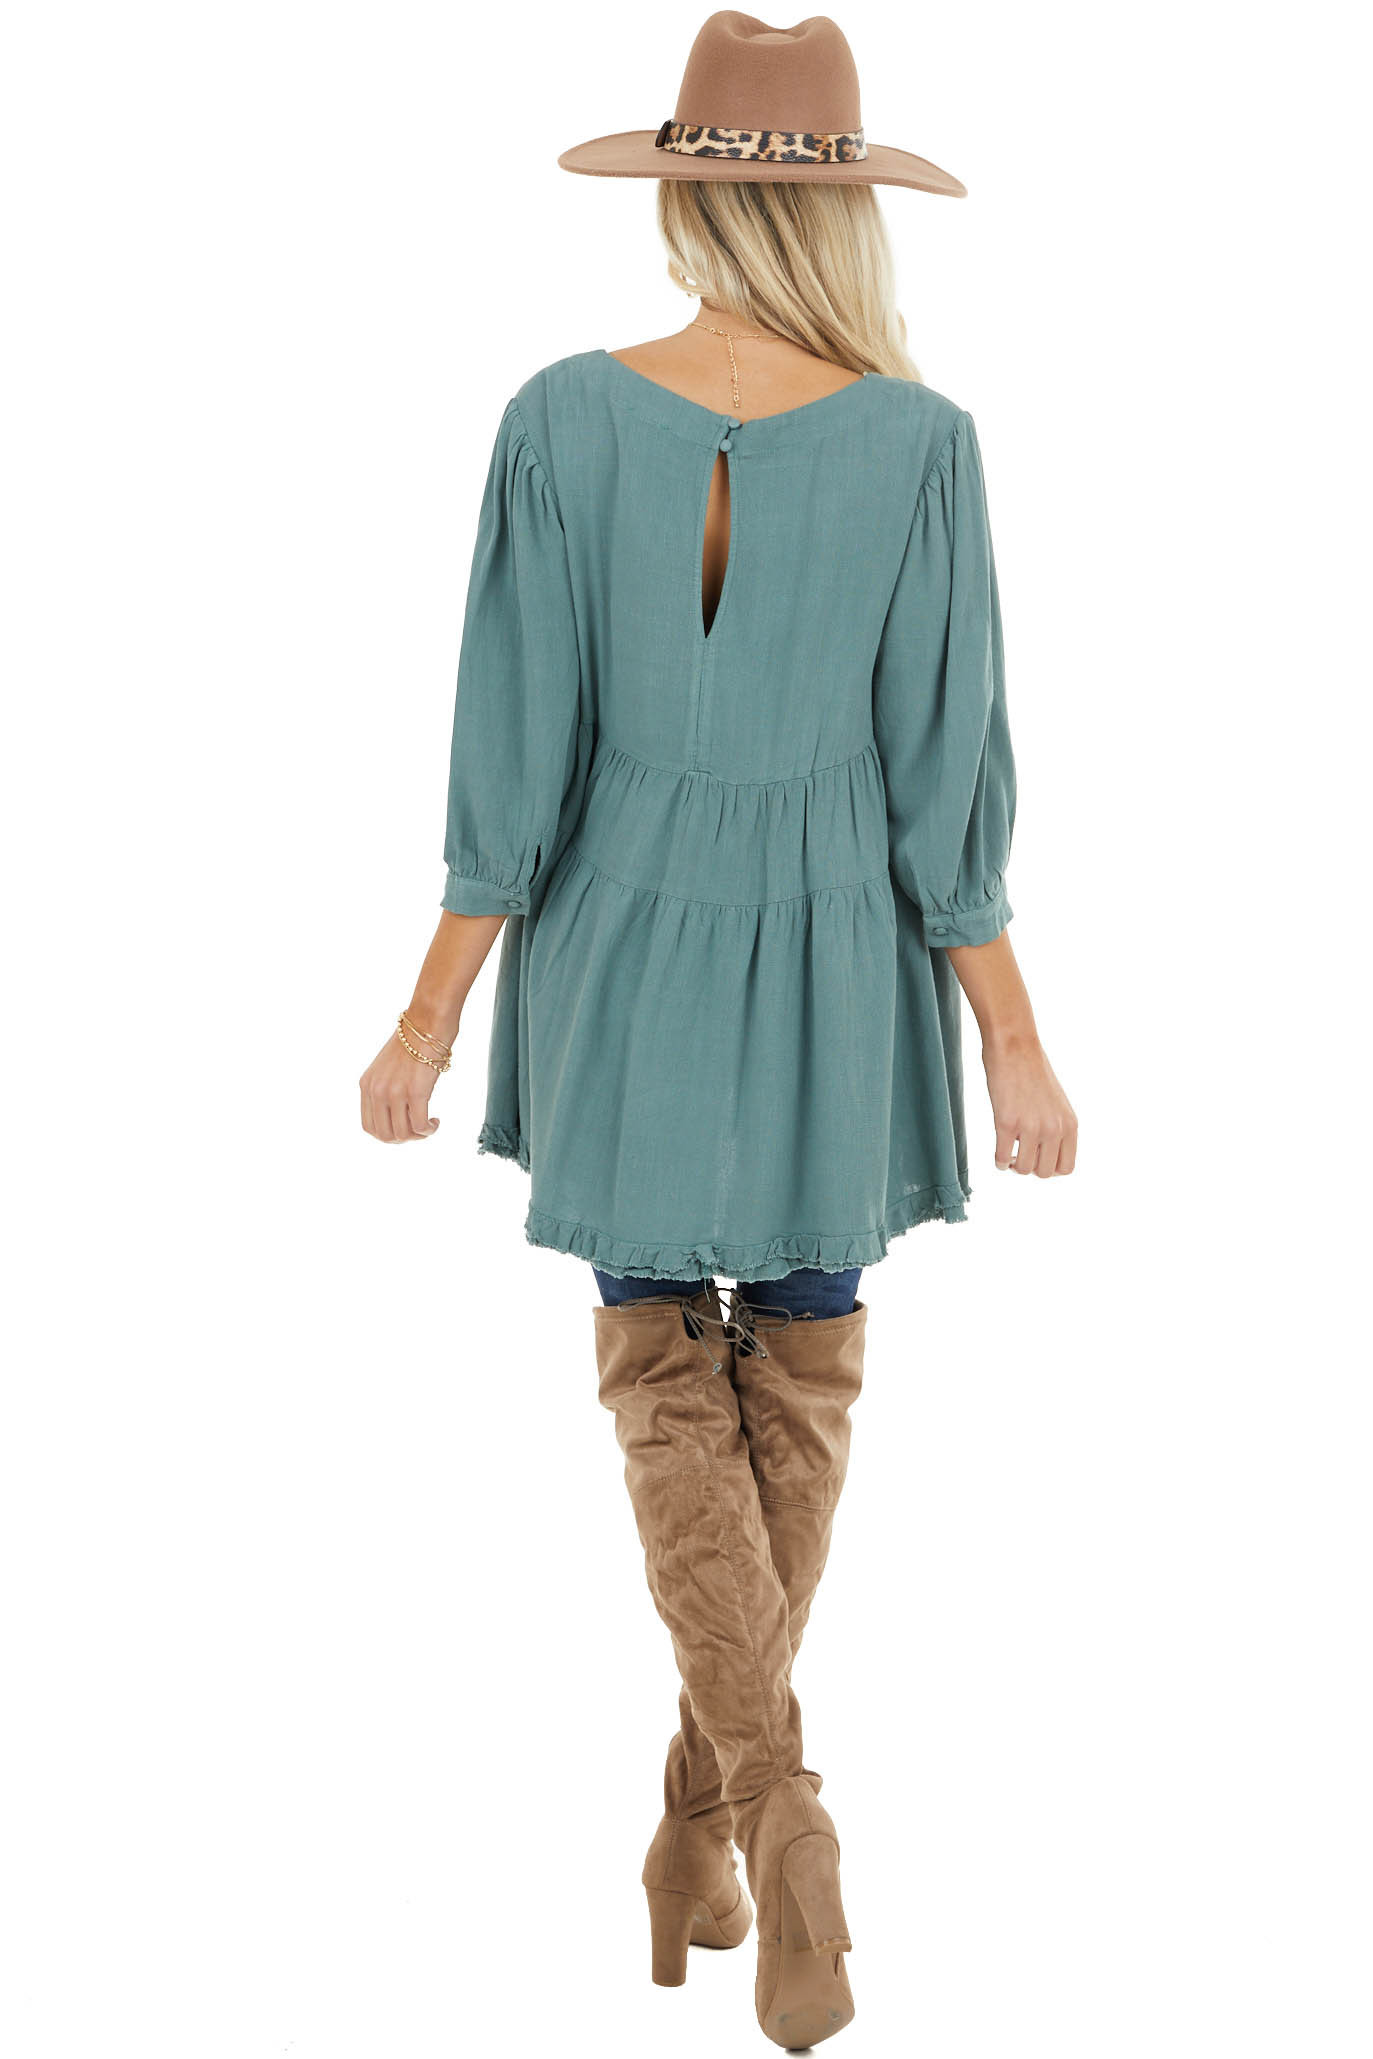 Sage 3/4 Sleeve Tiered Babydoll Top with Frayed Hem